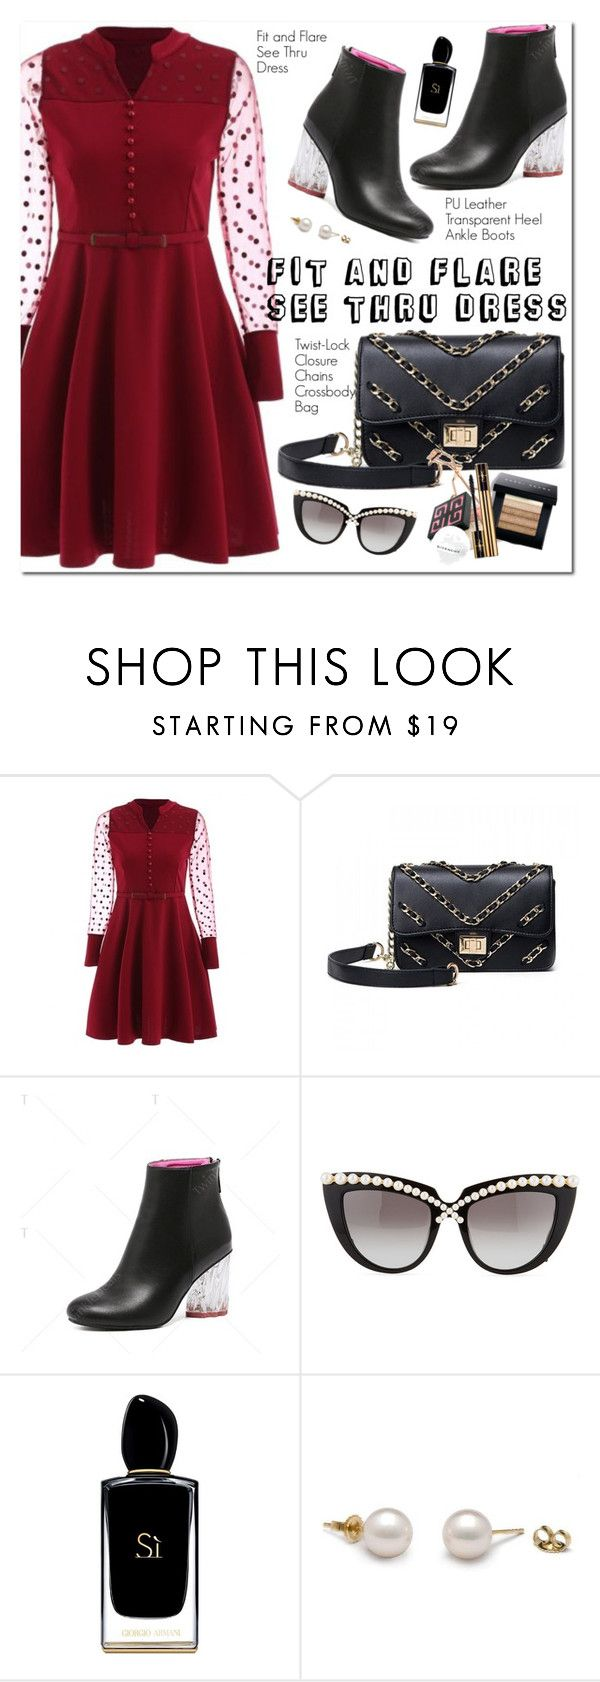 """""""Fit and Flare See Thru Dress"""" by oshint ❤ liked on Polyvore featuring Anna-Karin Karlsson and Giorgio Armani"""